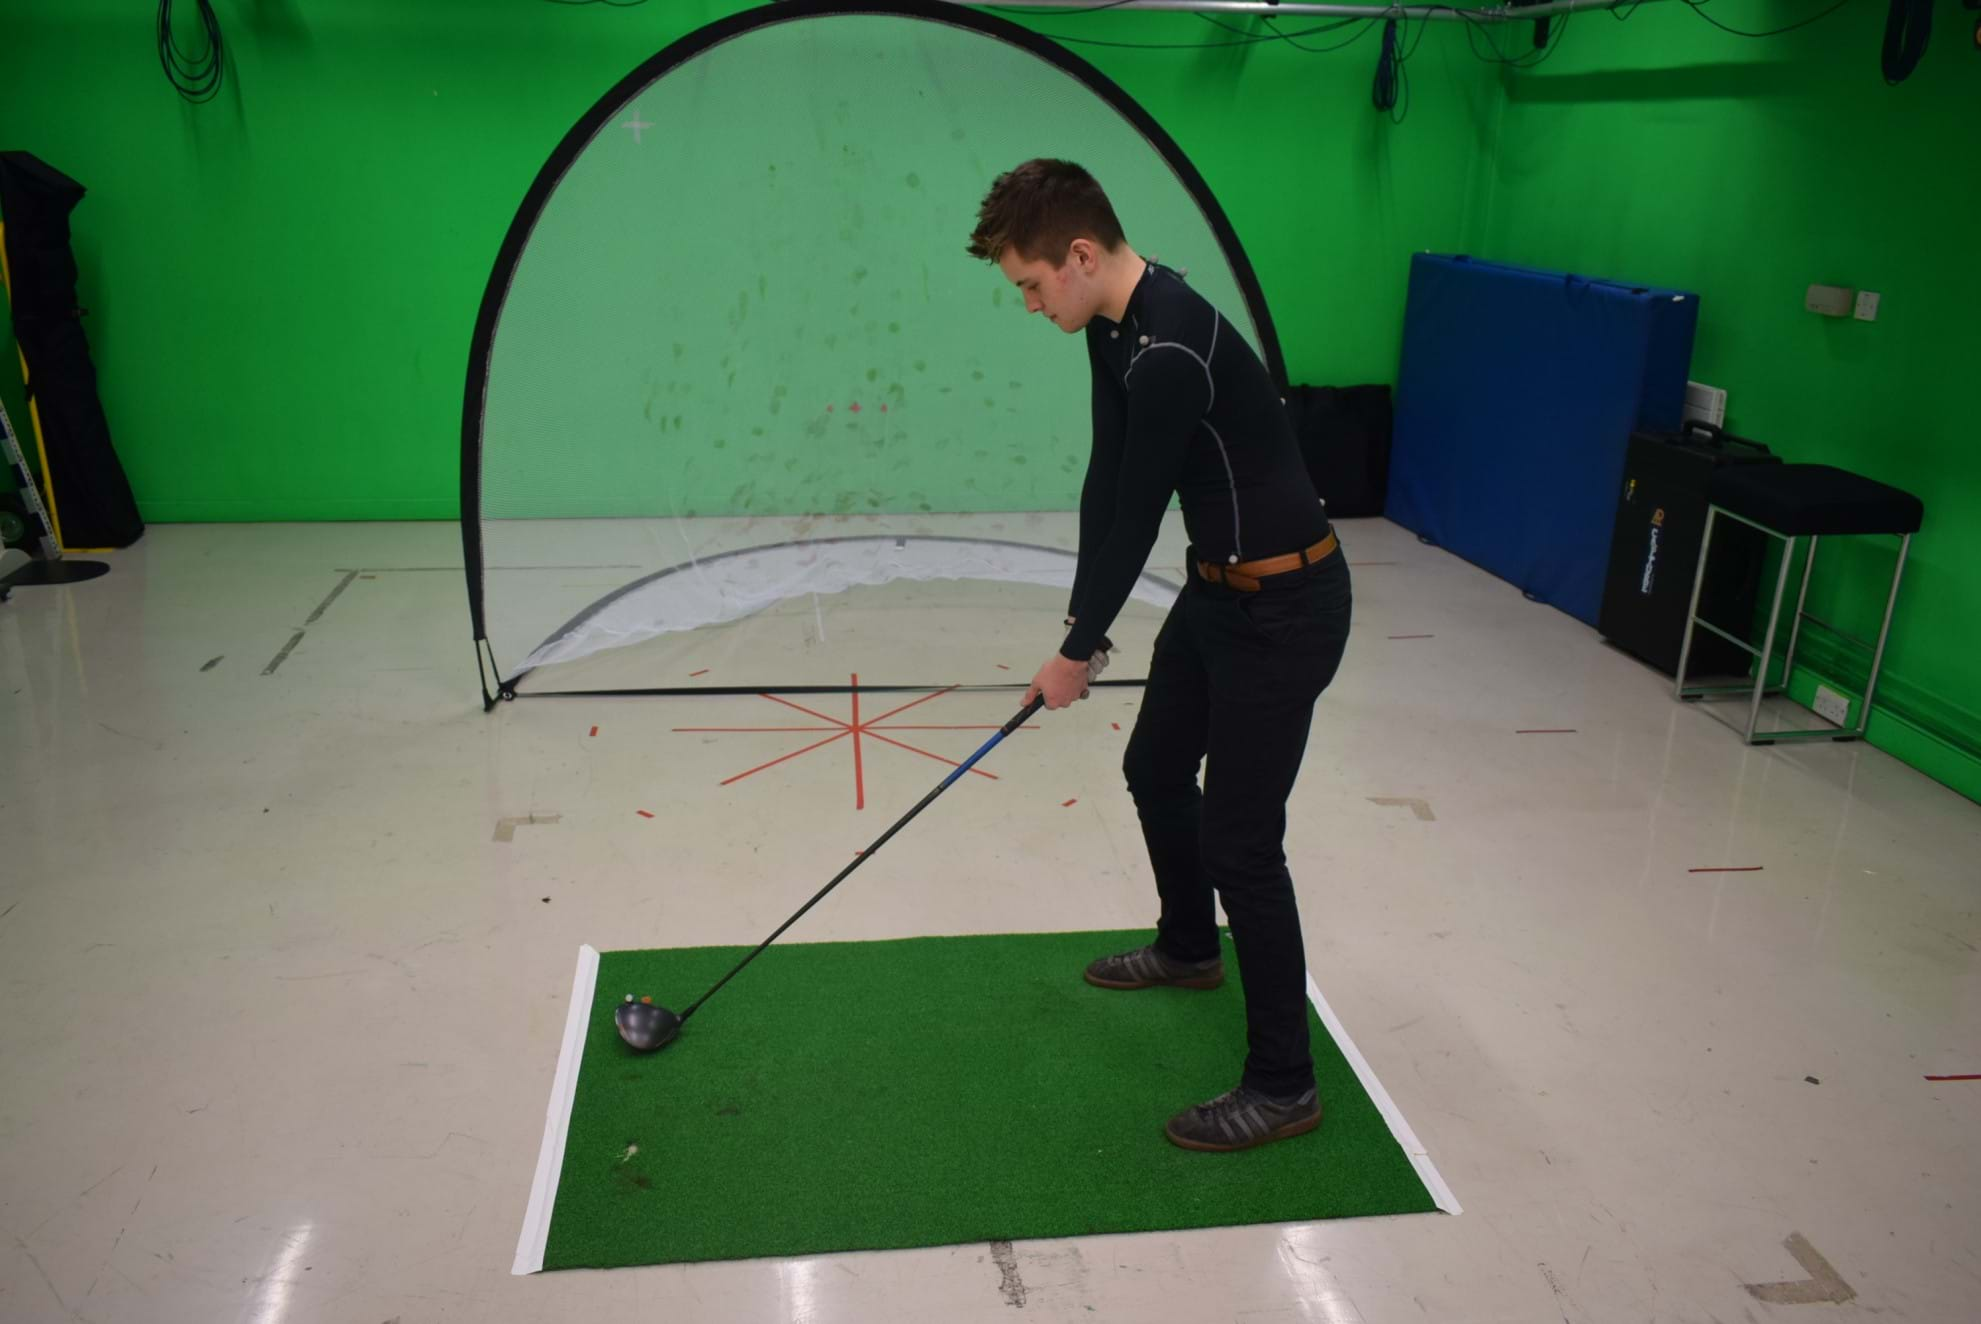 A golfer in a motion capture suit